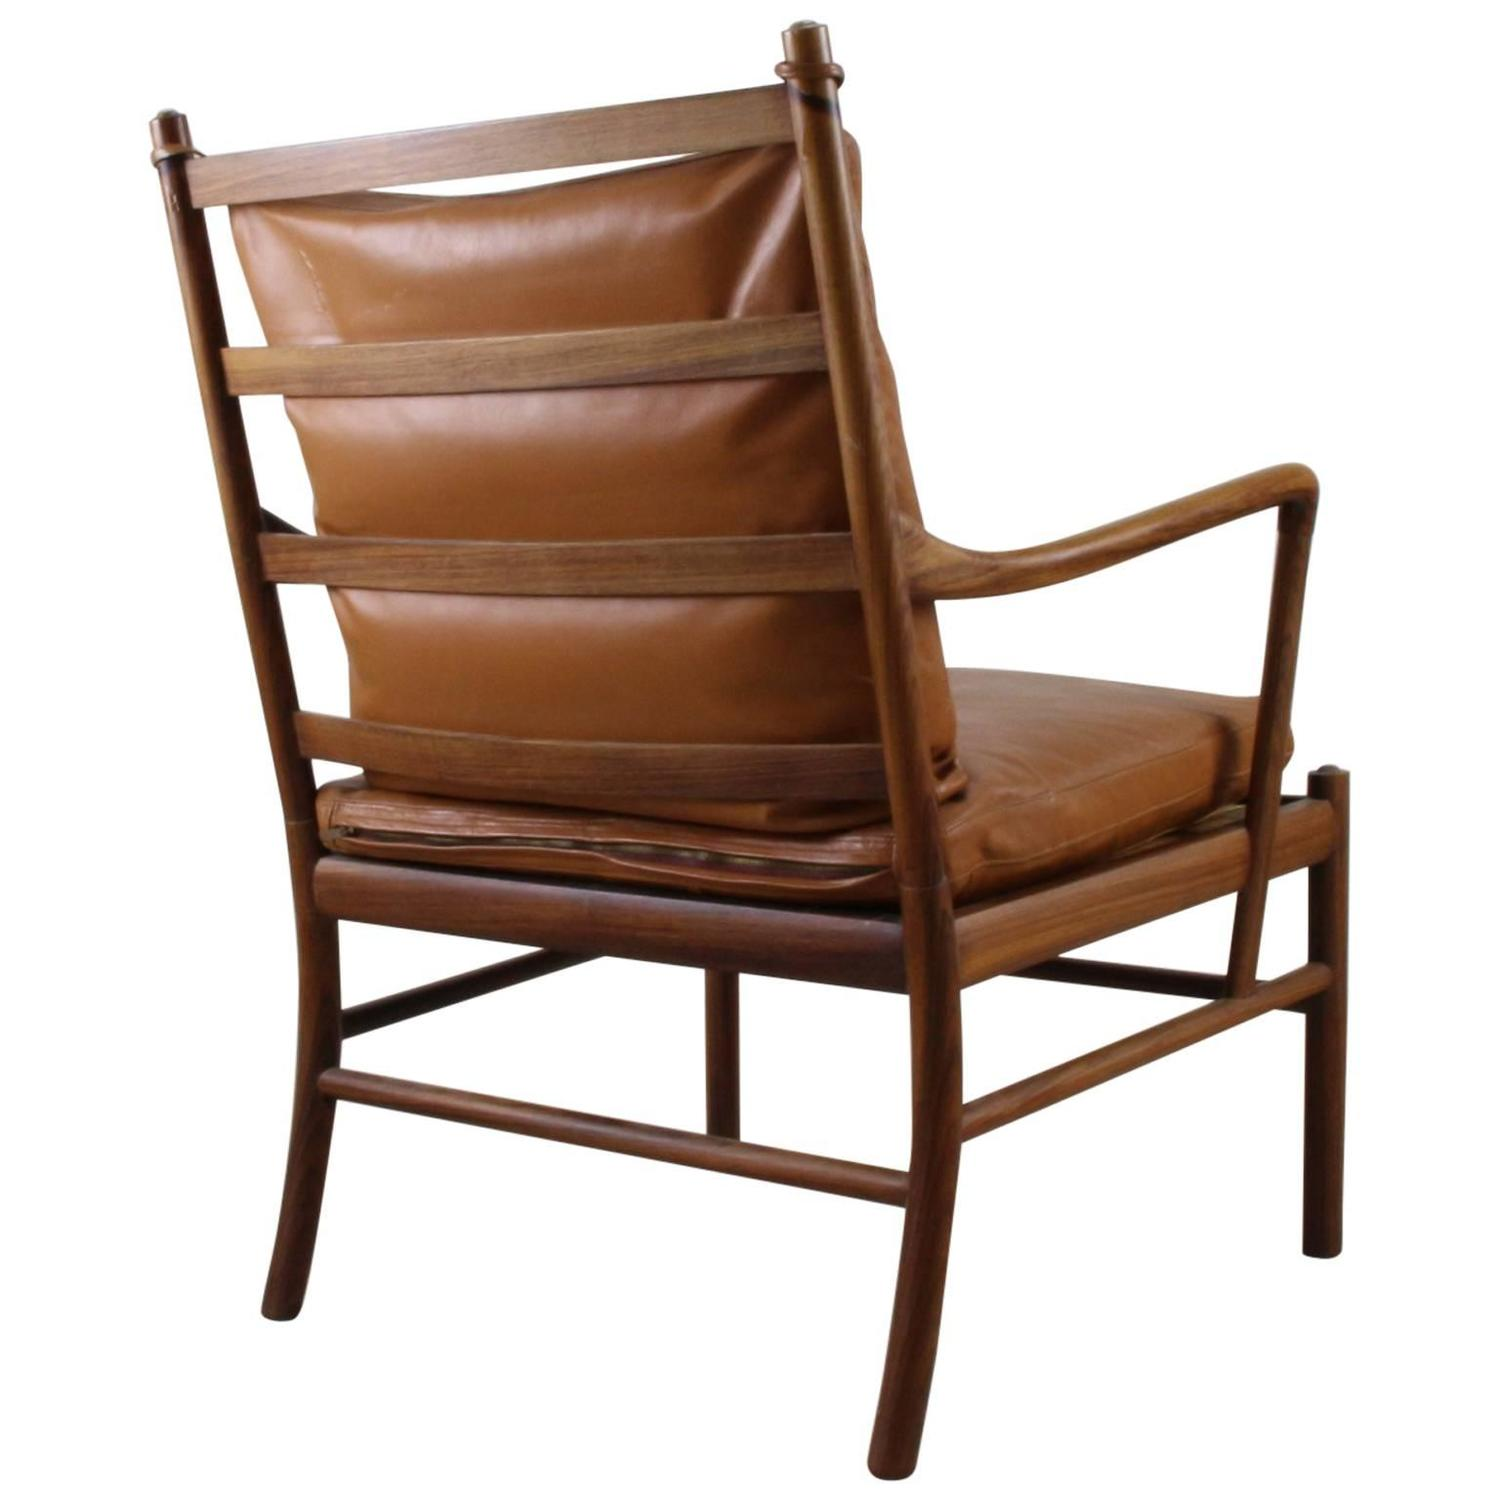 Original vintage ole wanscher colonial chair by p for P jeppesen furniture